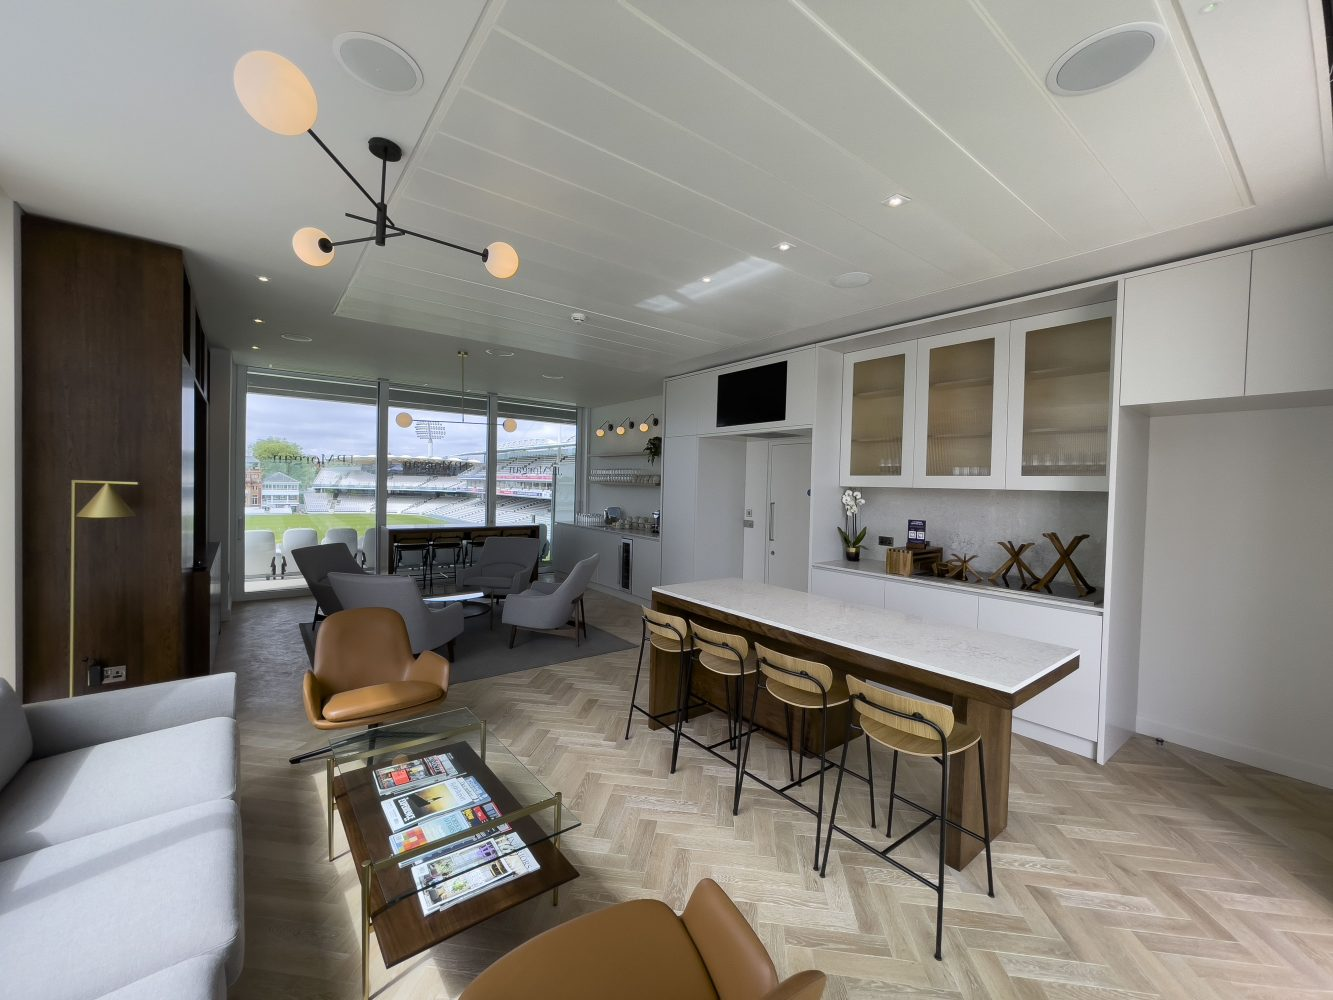 JP Morgan Suites – Project Completed